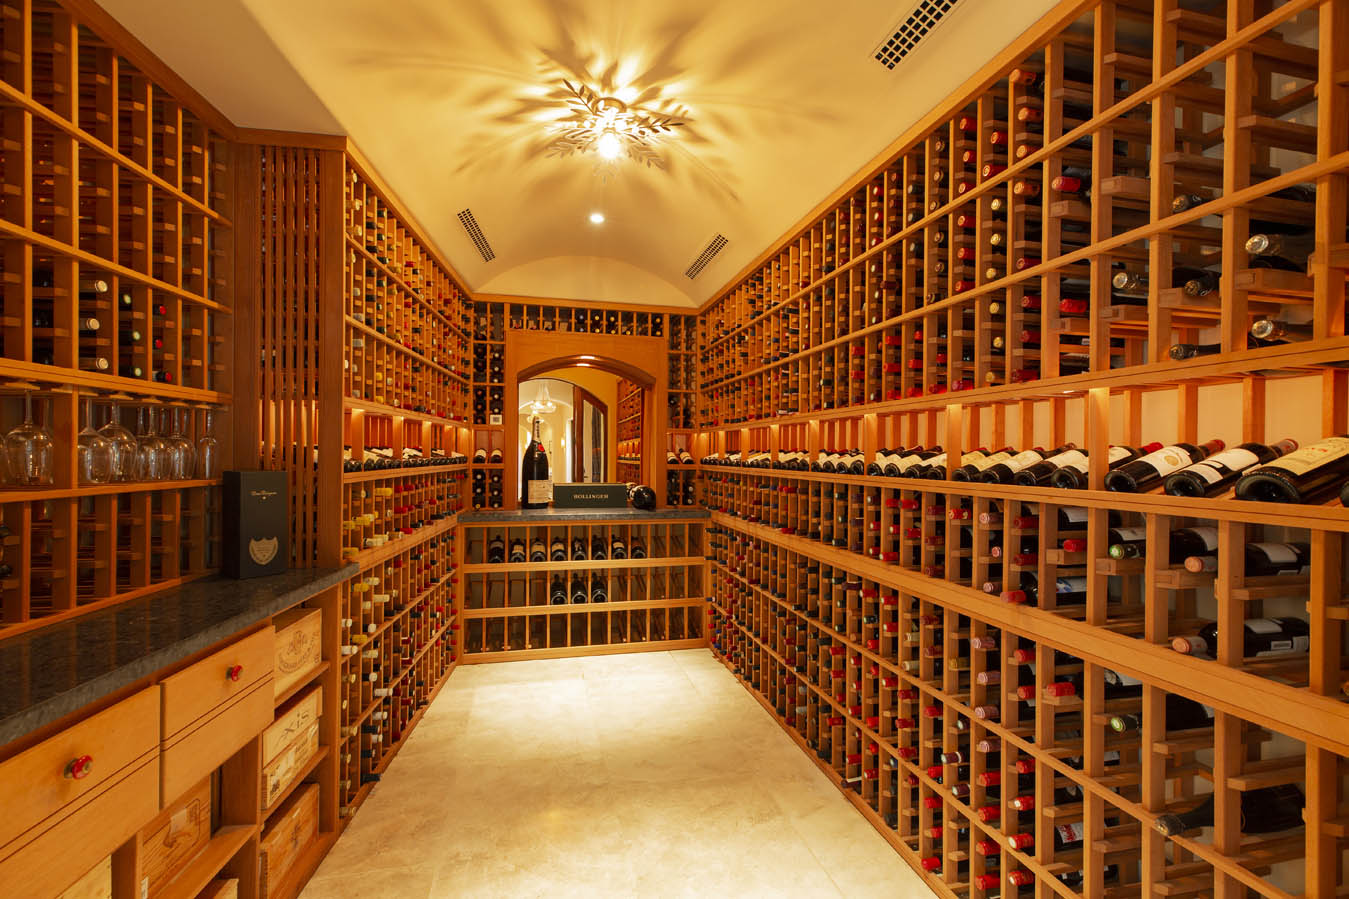 Wine cellar 303 Deer Park St Helena California